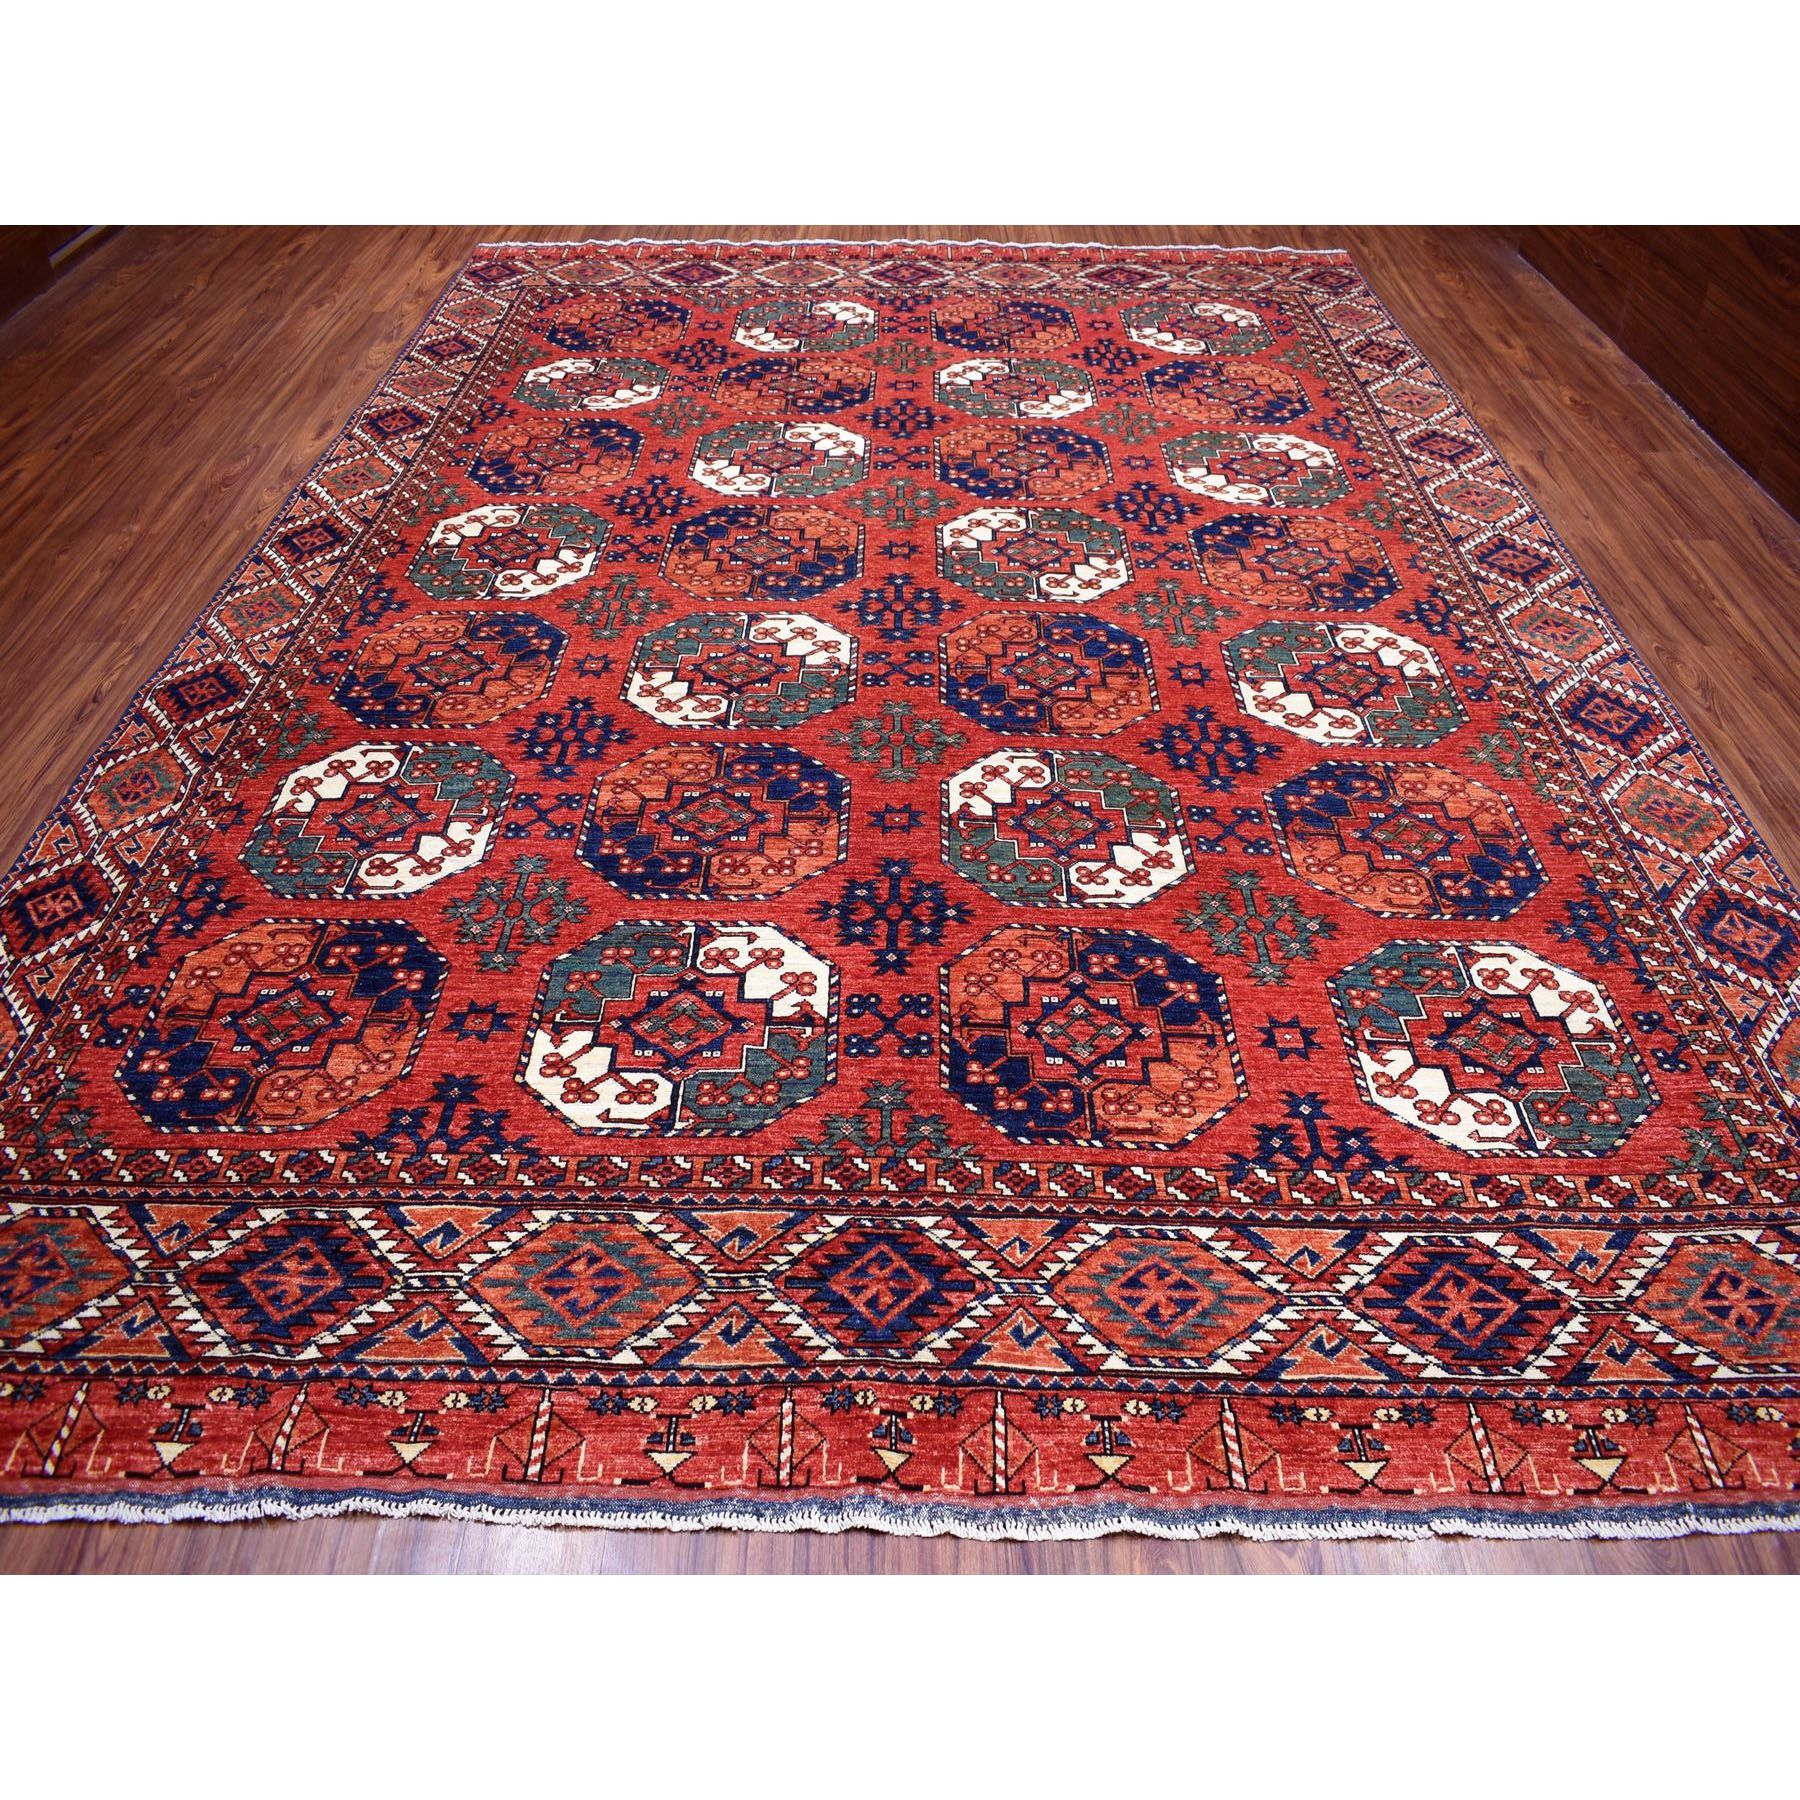 "9'9""x13'4"" Afghan Ersari With Elephant Feet Design Greens Natural Dyes Pure Wool Hand Knotted Oriental Rug"